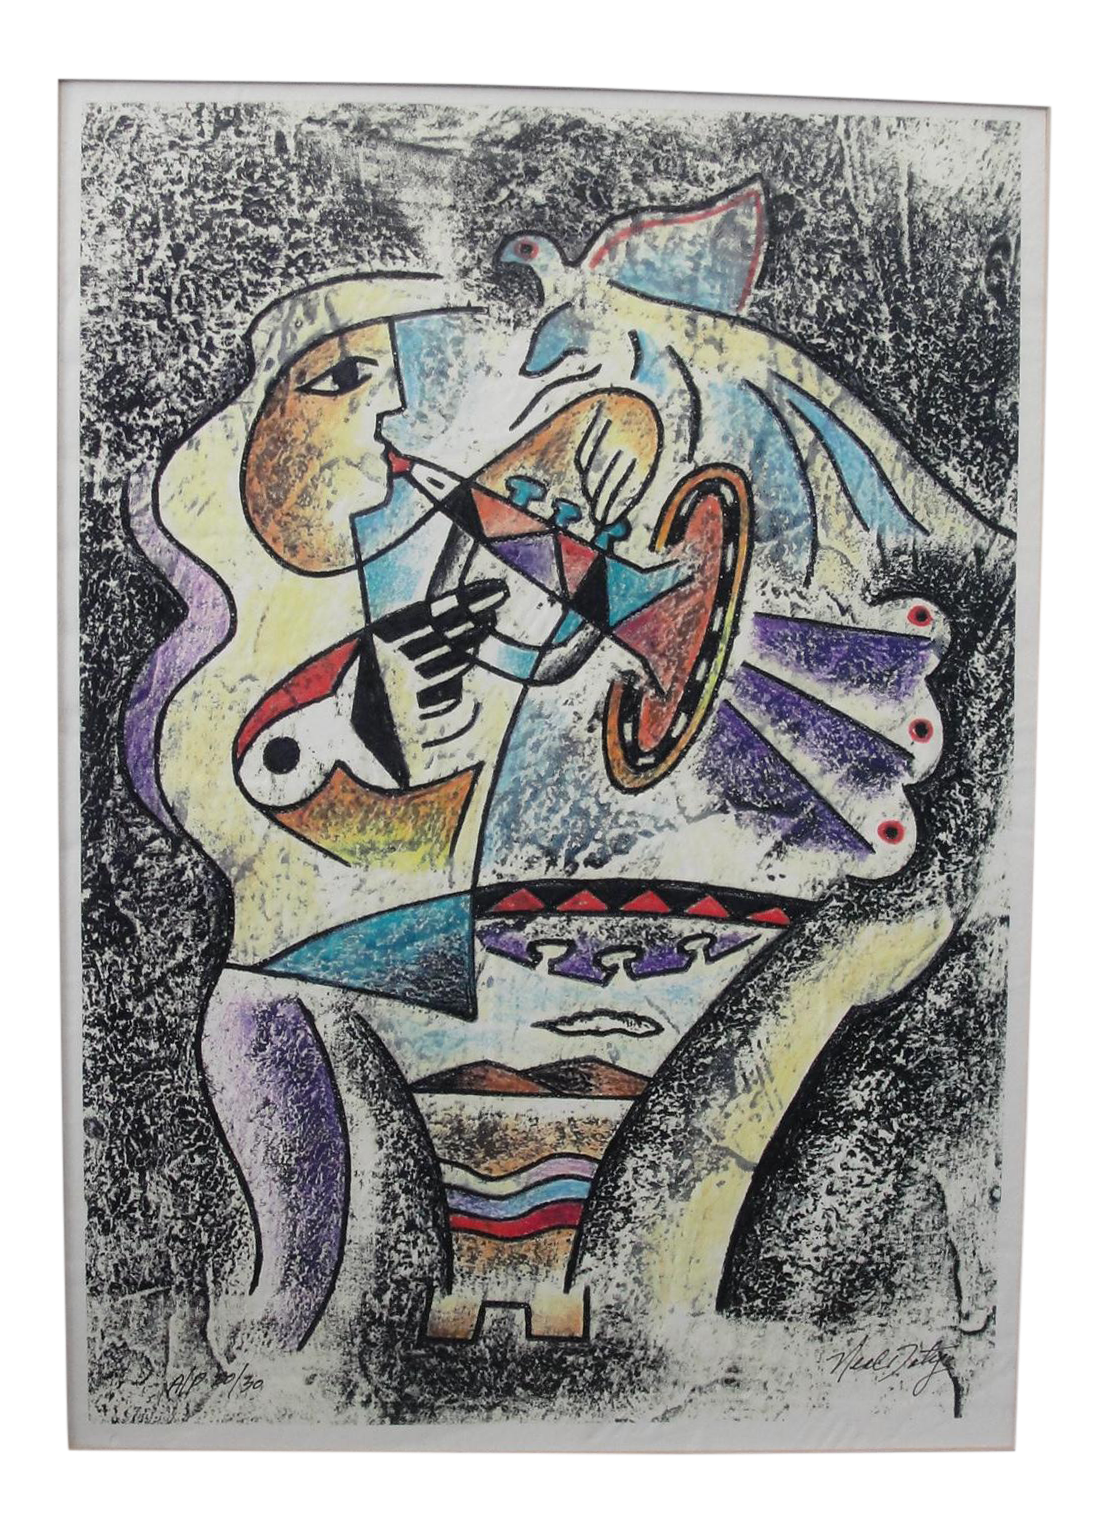 Cubism drawing hand. Neal doty cubist expressionist